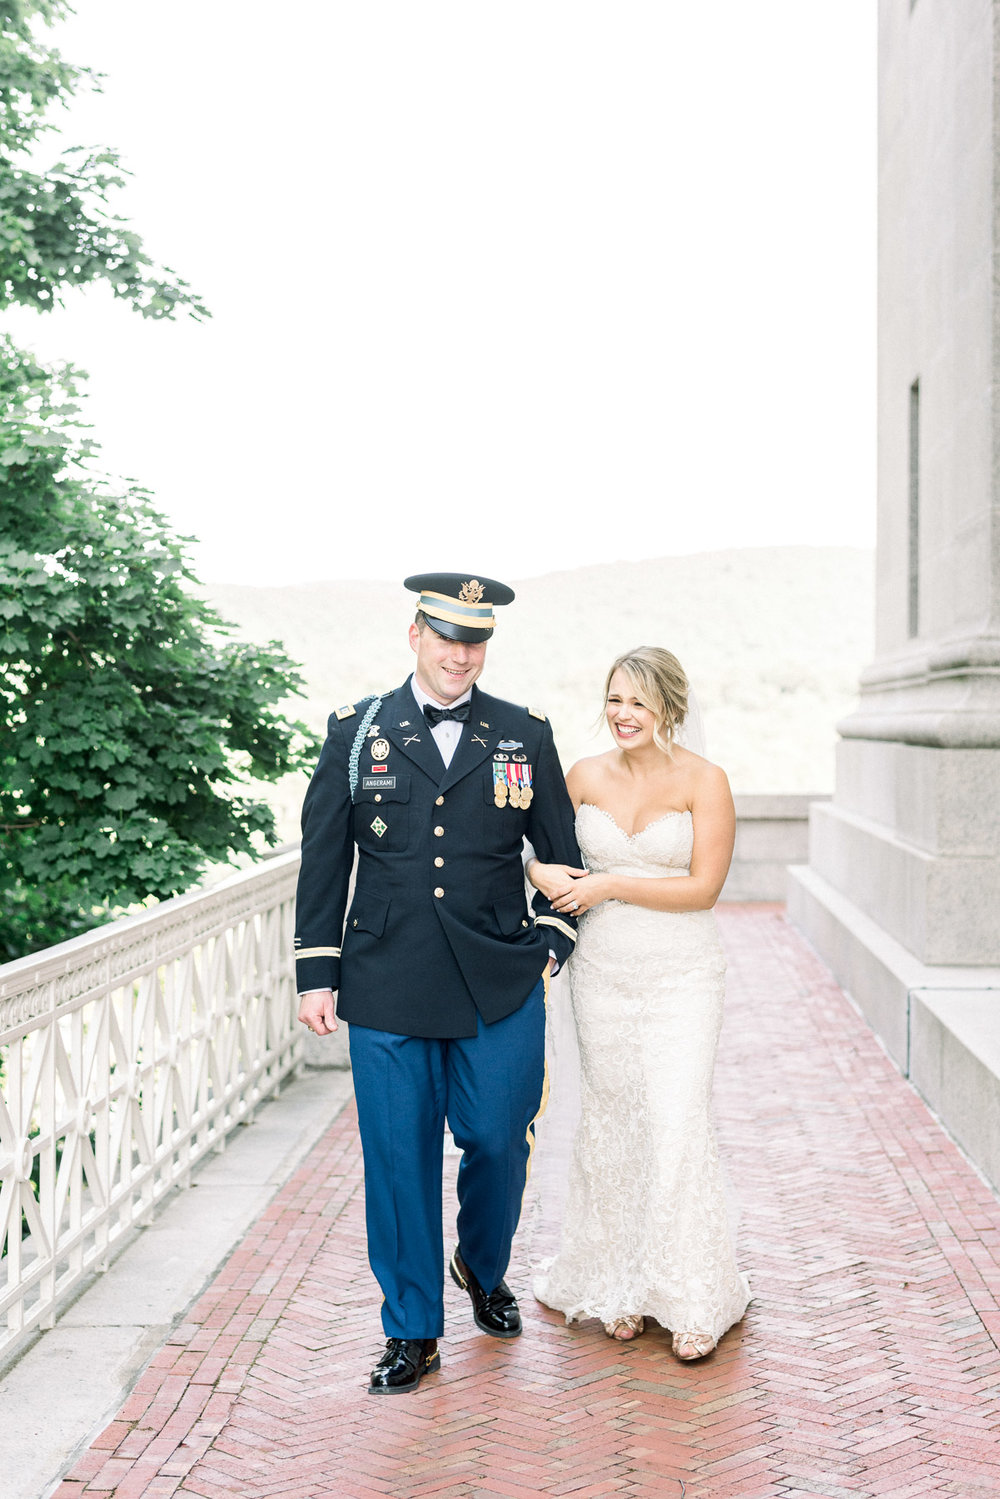 West Point Wedding by Michelle Lange Photography-44.jpg